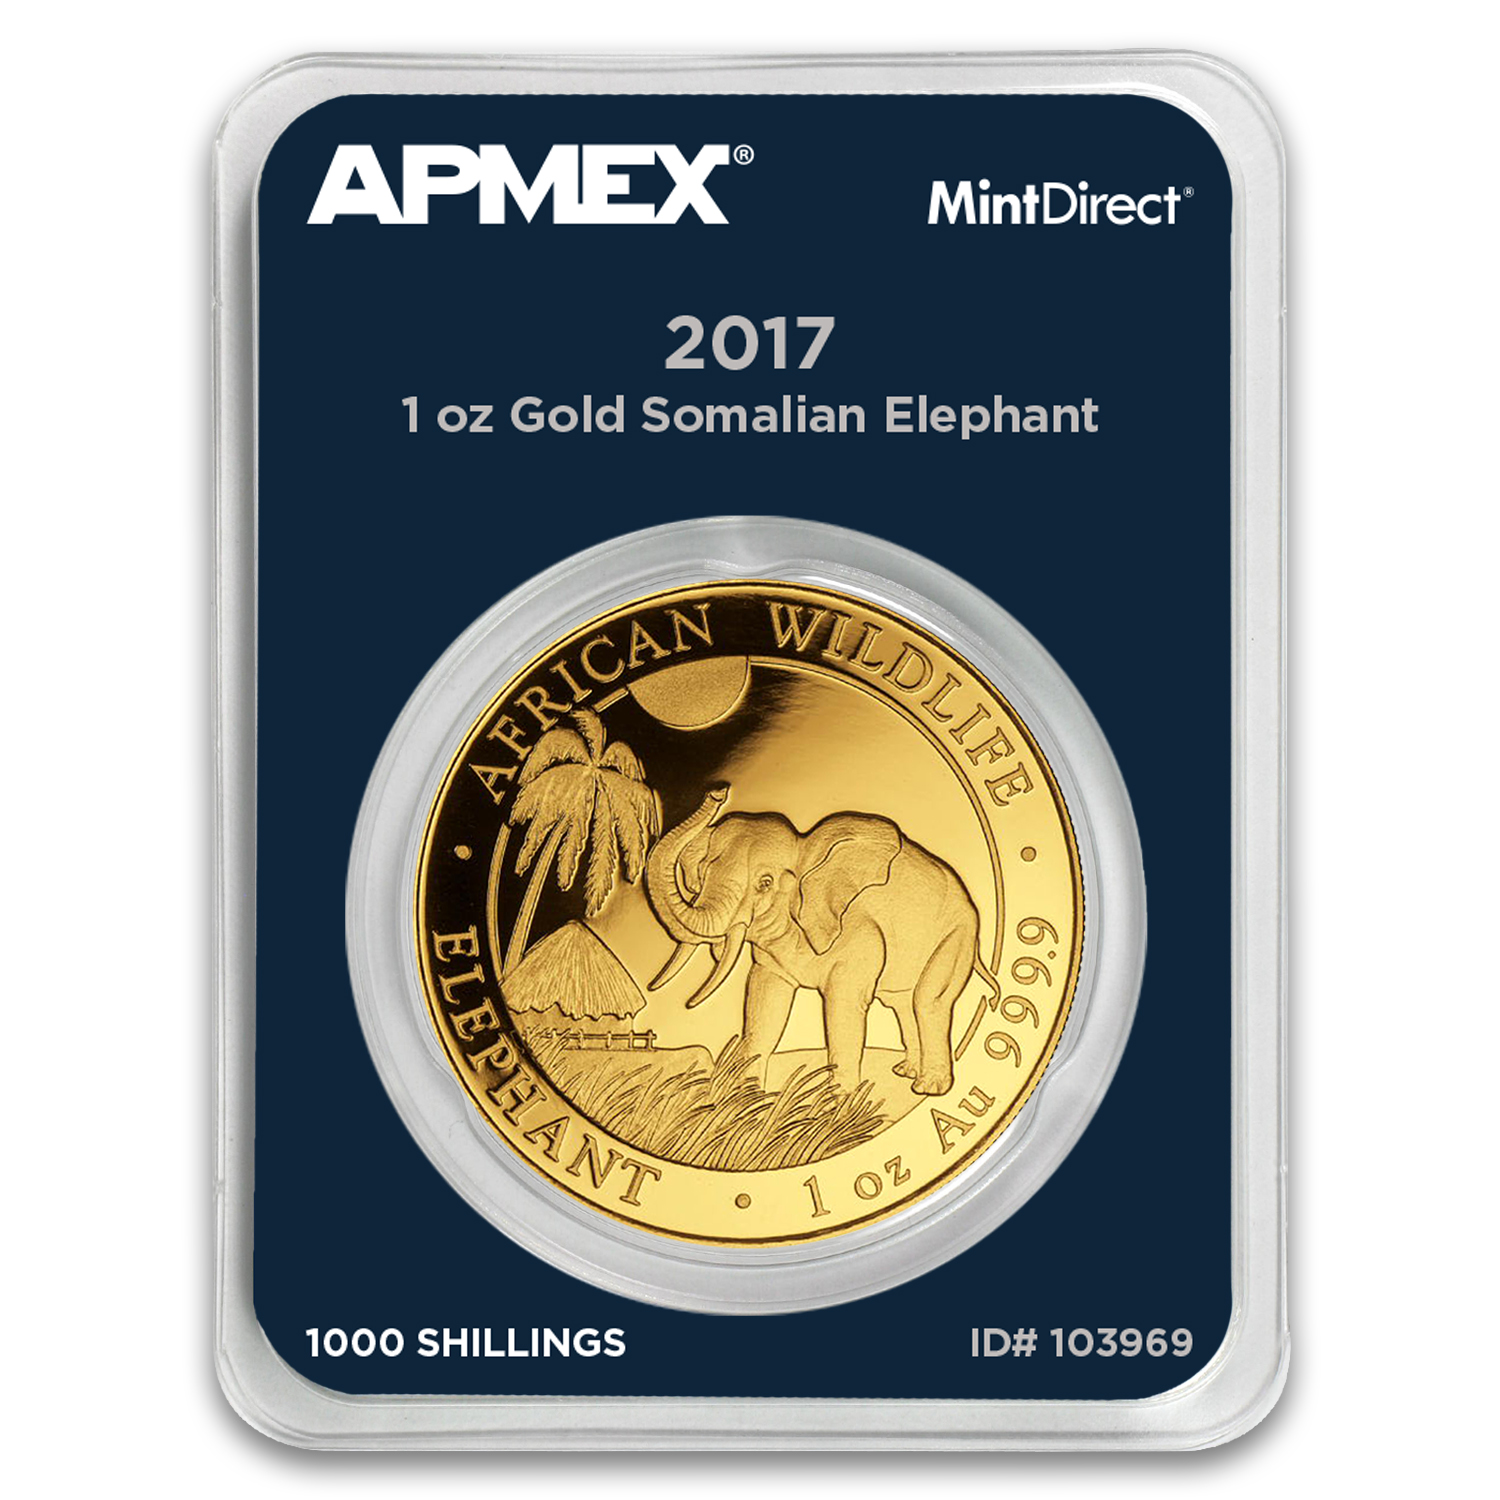 2017 Somalia 1 oz Gold African Elephant (MintDirect® Single)